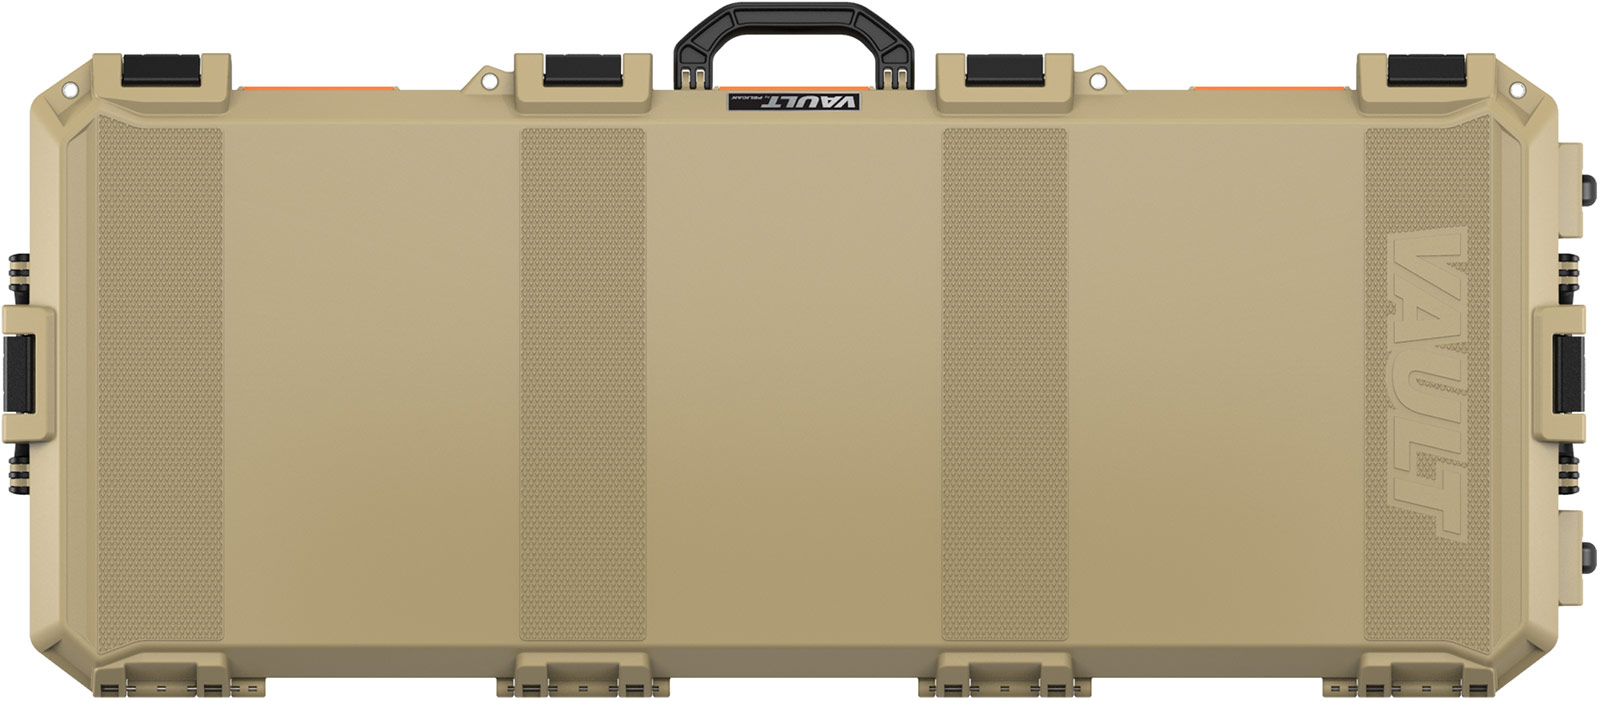 pelican tan rifle case v730 vault hunting cases